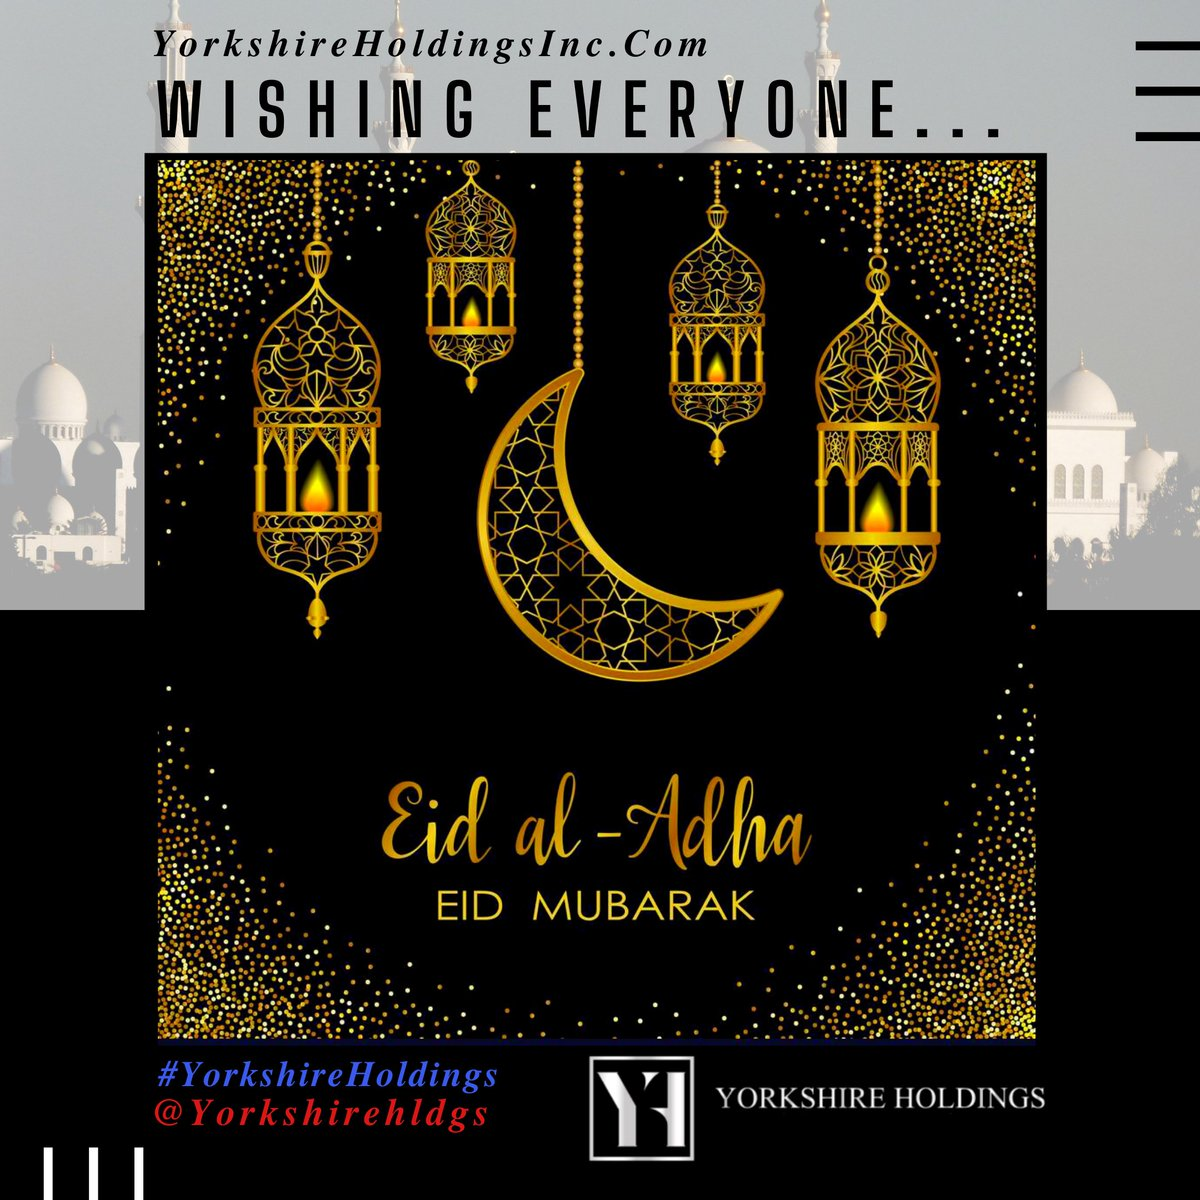 """""""We at Yorkshire Like To Wish Everyone A Very Happy Eid! May This Special Day Bring Peace, Happiness & Prosperity To Everyone."""" ~ Founder, YGH  #EidMubarak #EidAlAdha #Peace #عيد_الاضحى #EidAdhaMubarak   🗞 #YorkshireAnalysis 🏛 #YorkshireHoldings ℱᵒᒻᒻᵒ꒳👉 @Yorkshirehldgs https://t.co/bEOIyZZyhm"""